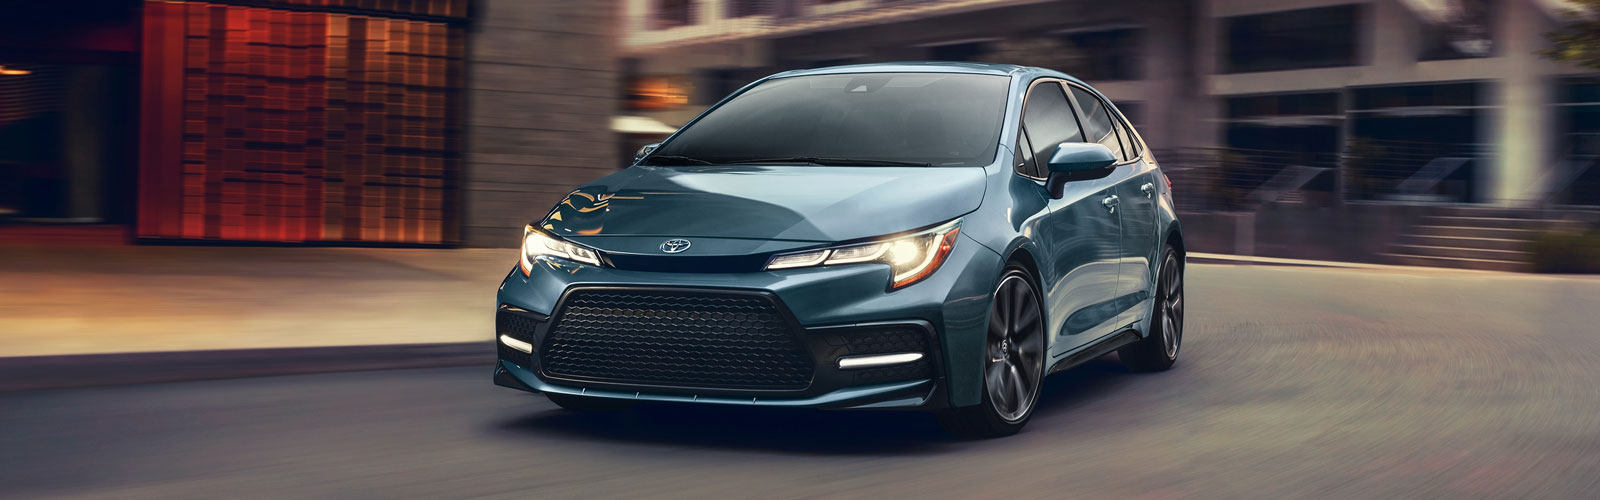 2020 Toyota Corolla Sedan Models For Sale In Grenada, Mississippi